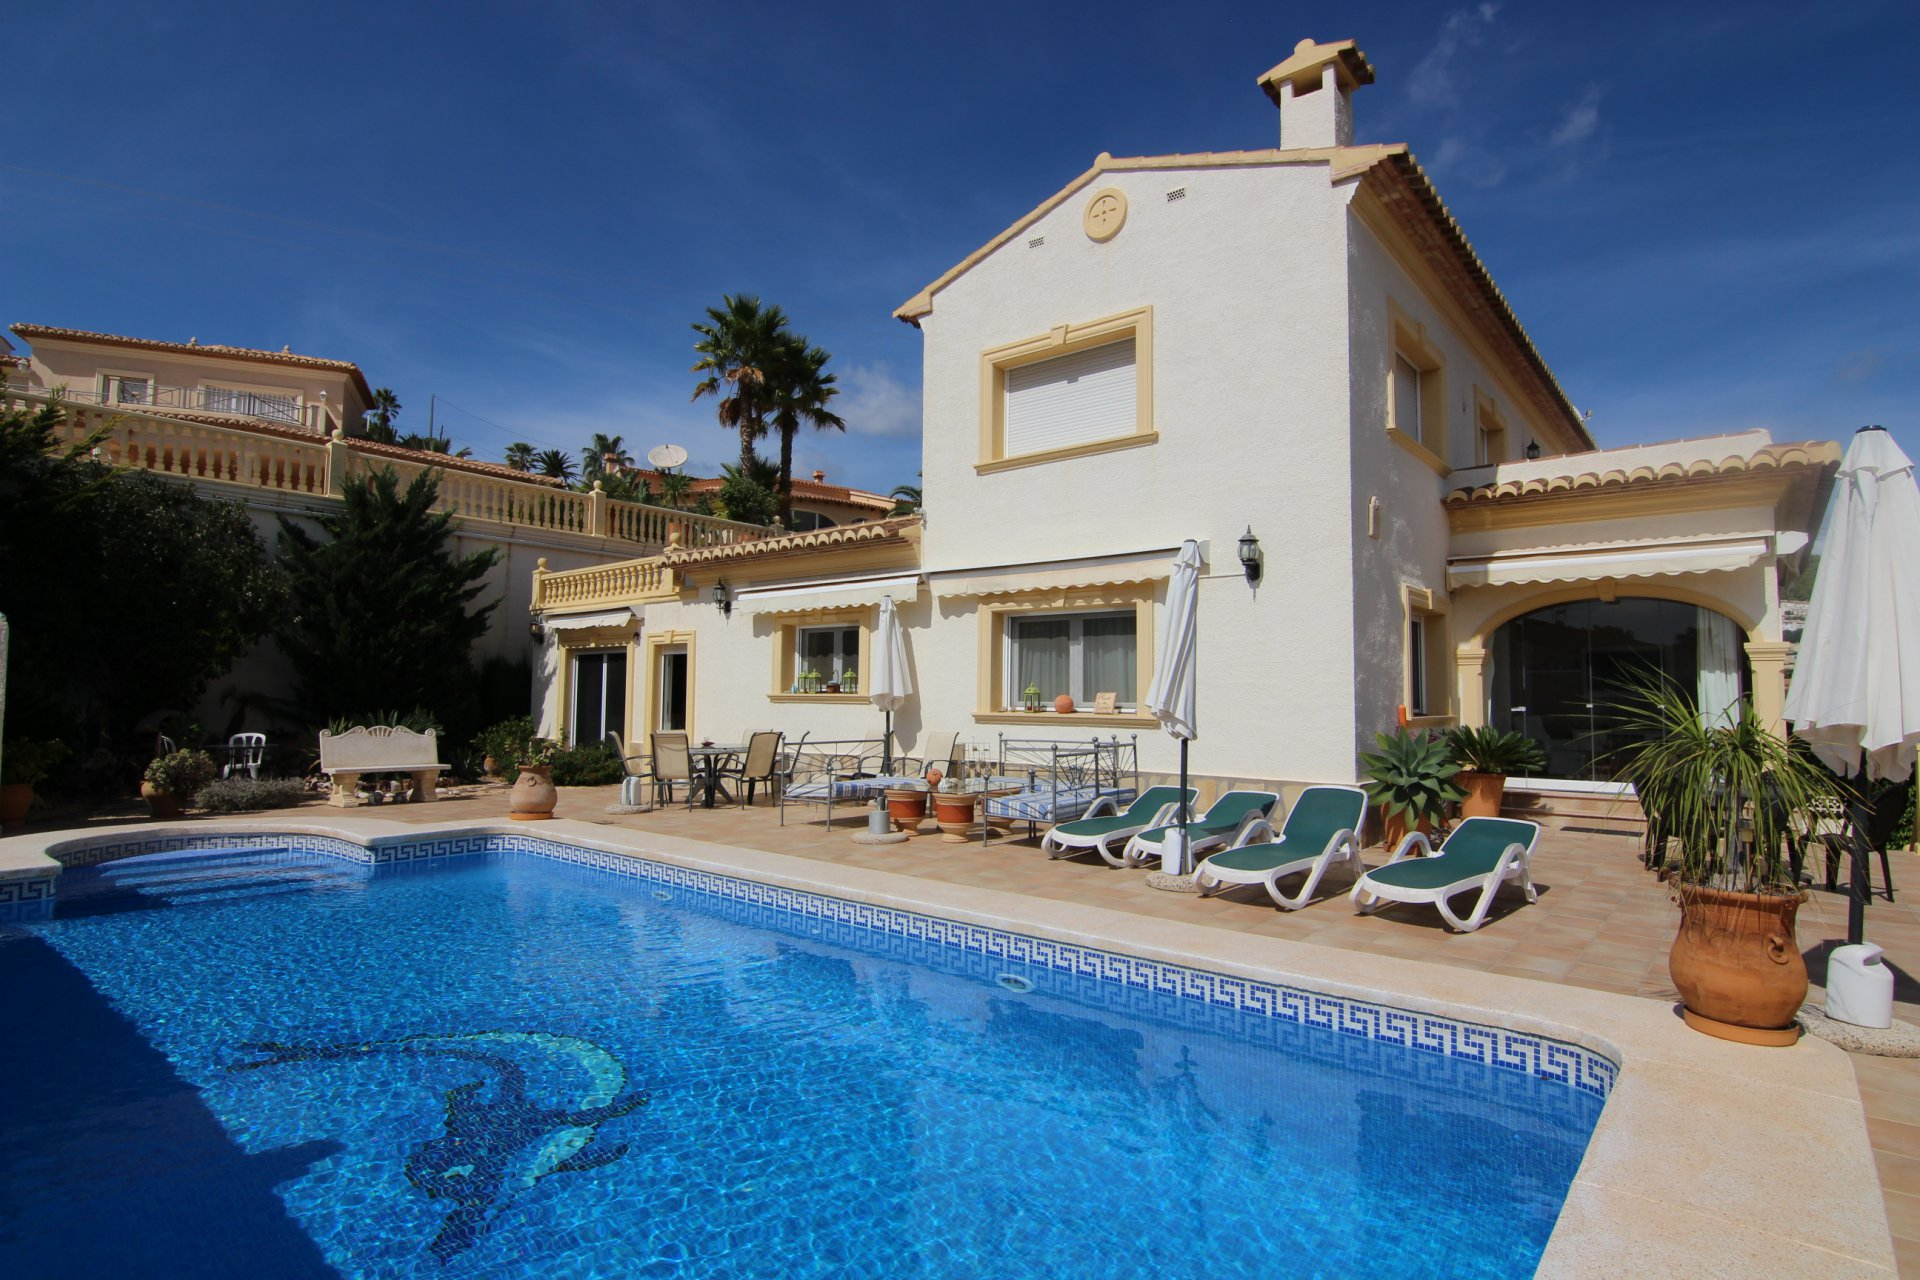 Excellent villa with 4 bedrooms and stunning sea views